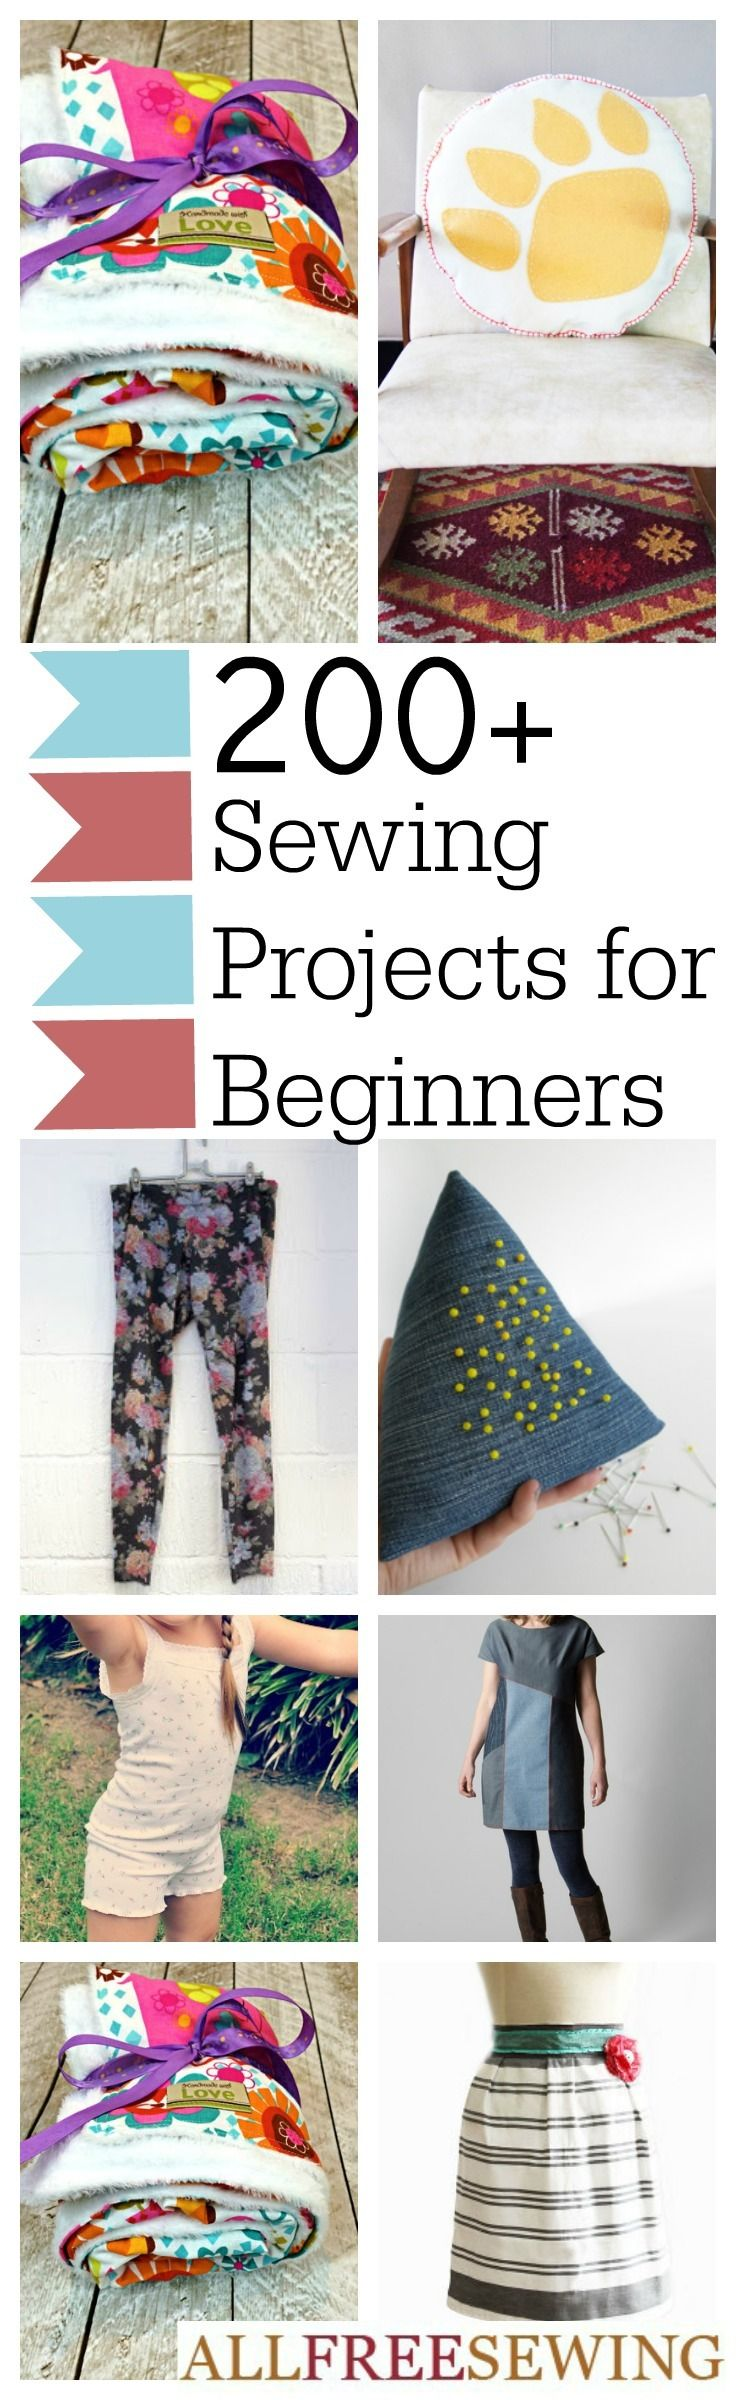 200+ DIY Sewing Projects for Beginners | Costura, Coser y Patrones